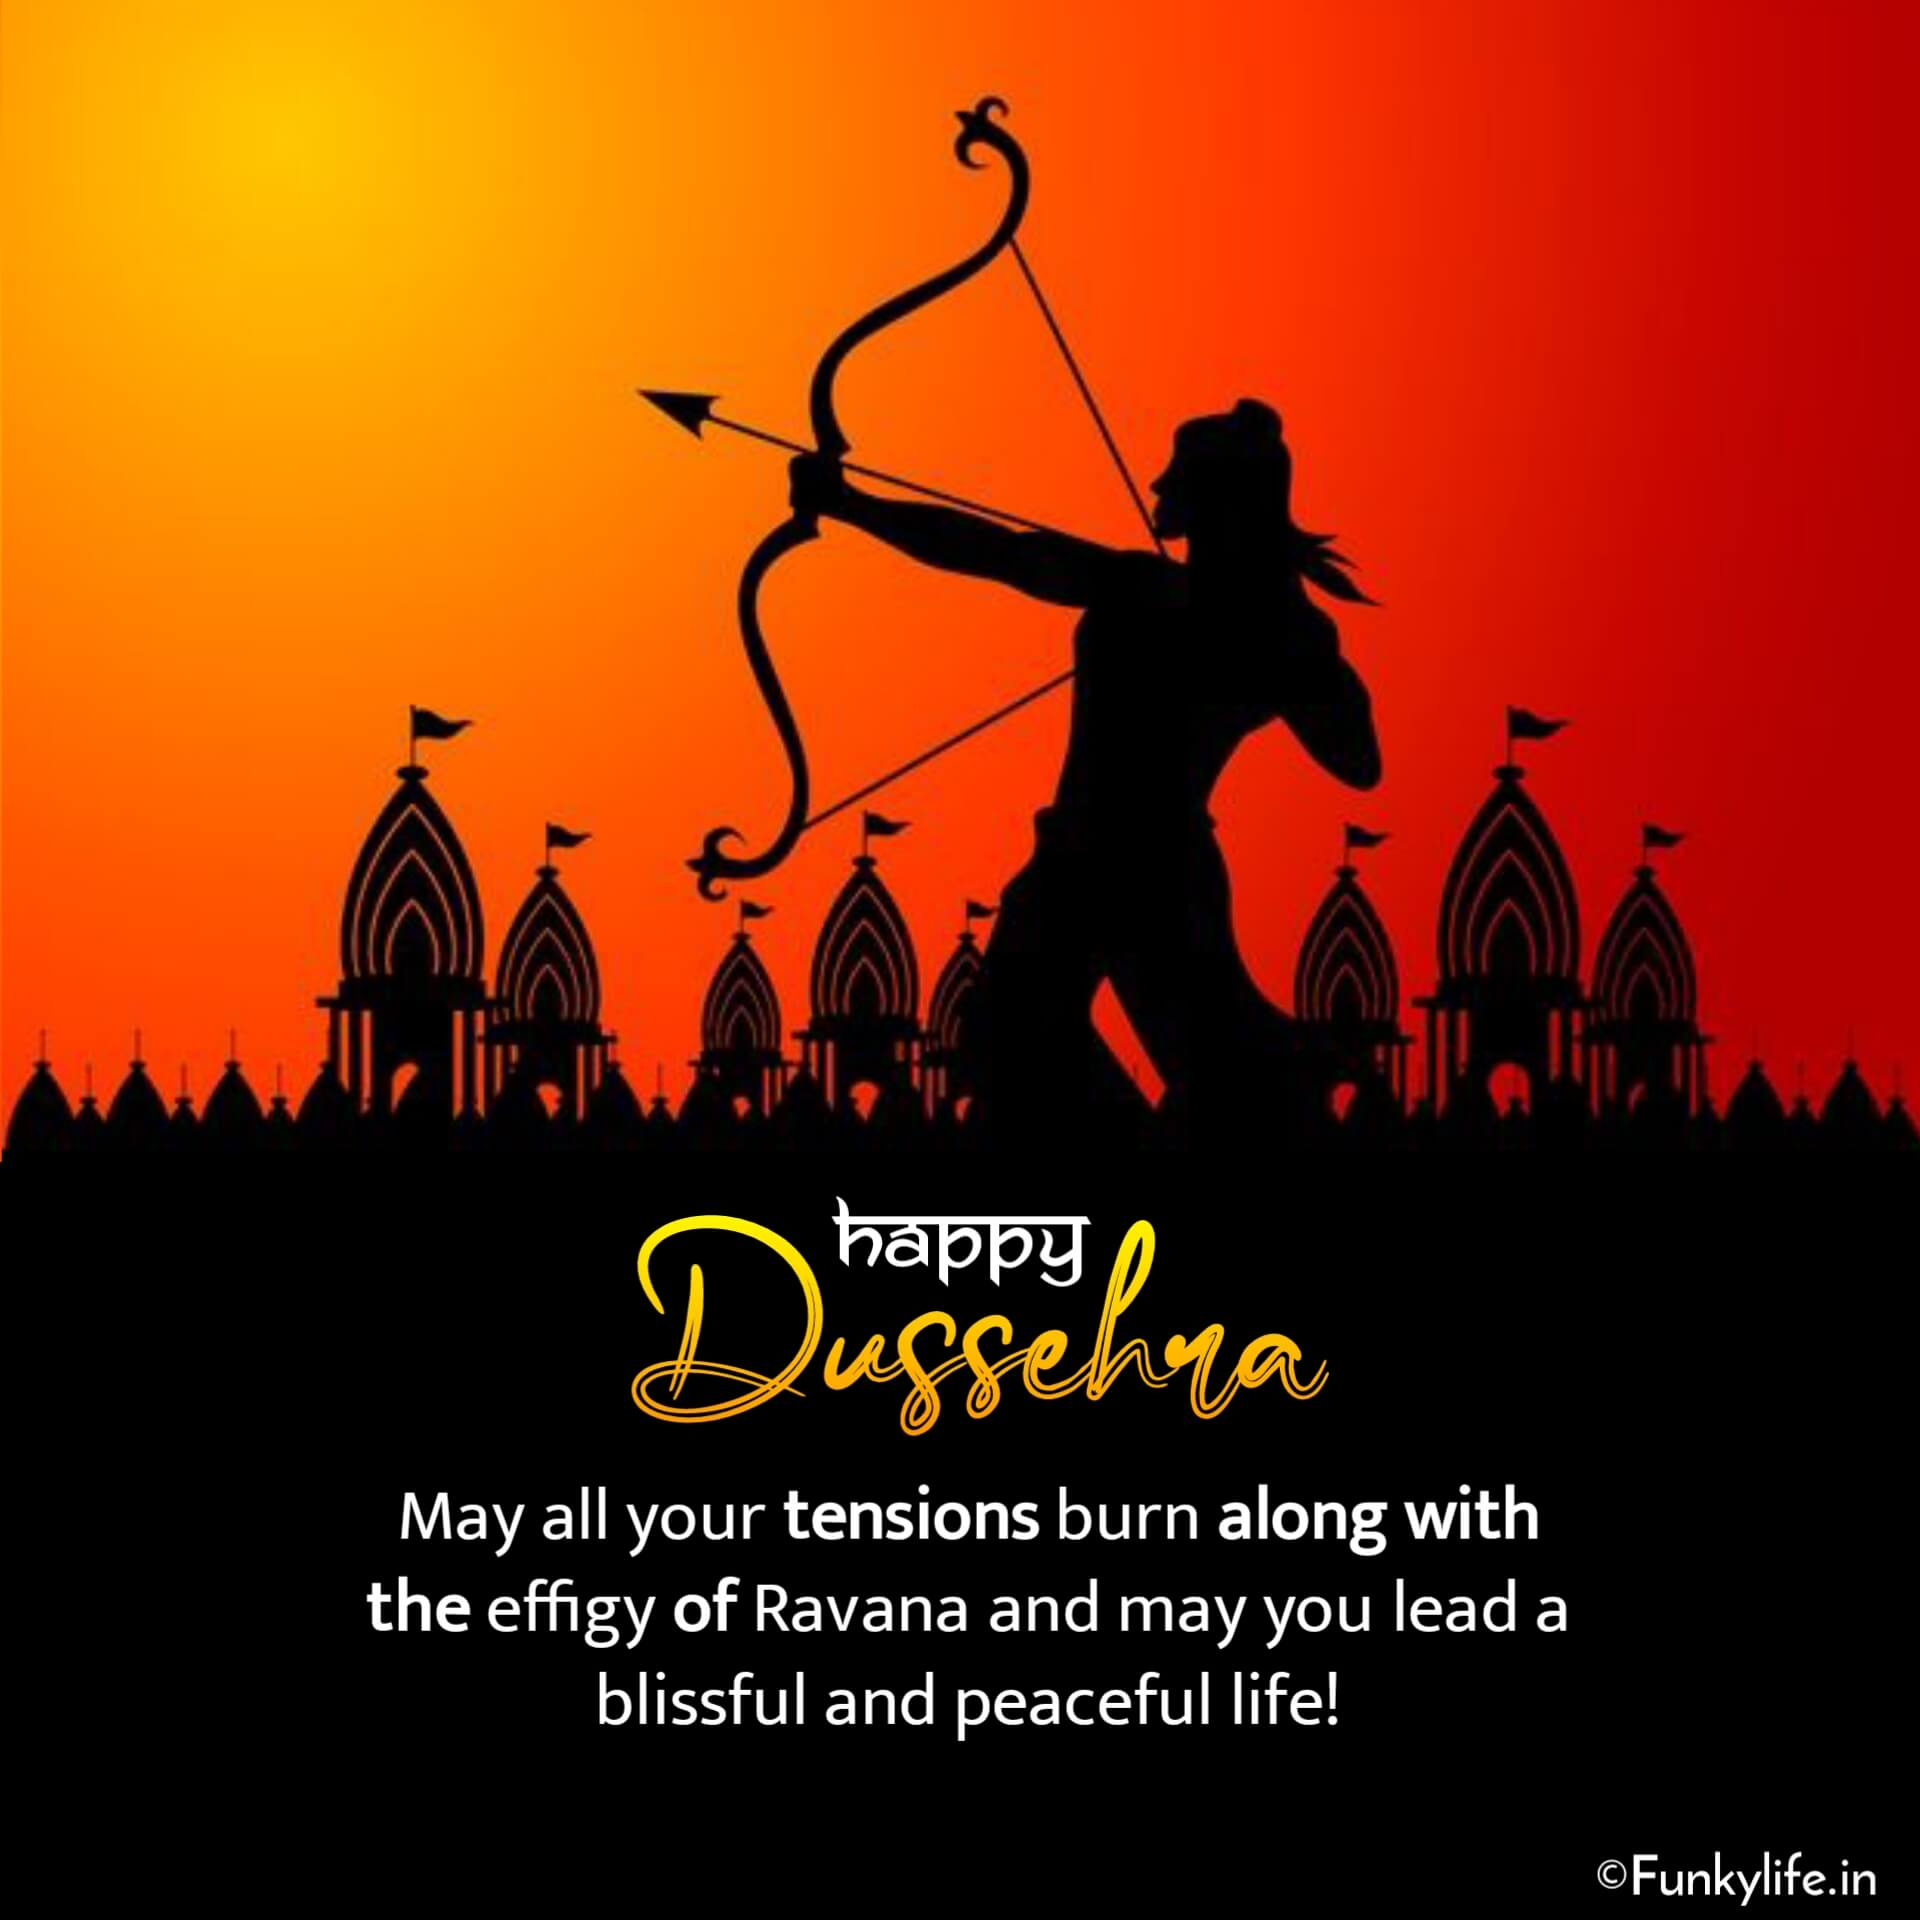 English Dussehra Wishes Images